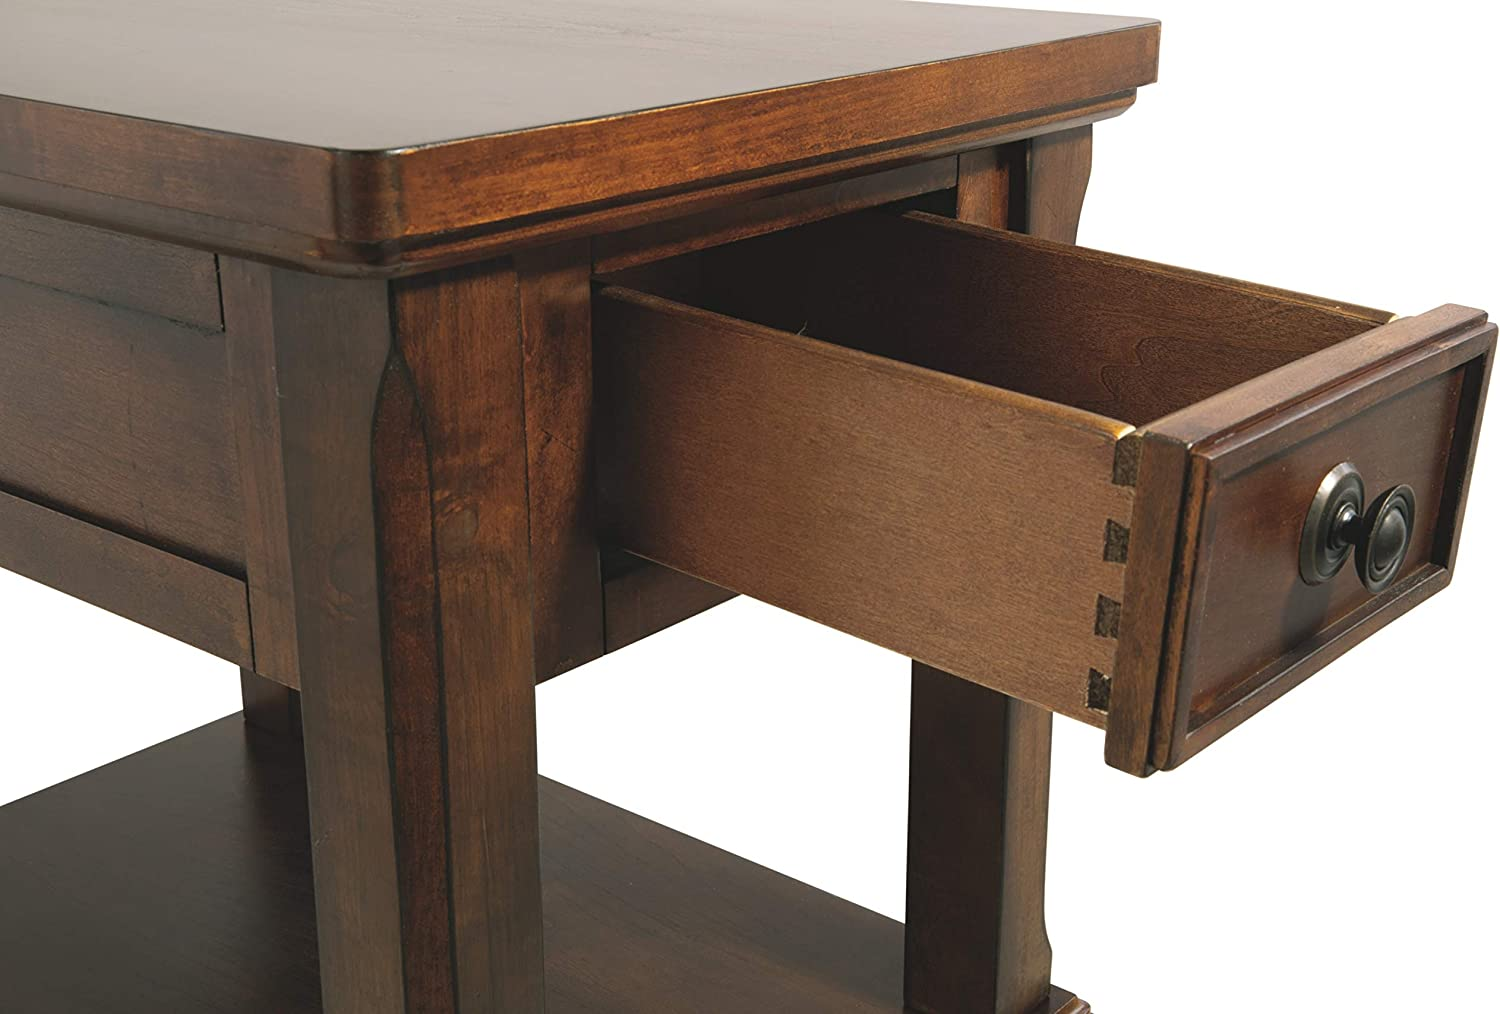 Signature Design by Ashley - Porter Chairside End Table, Rustic Brown